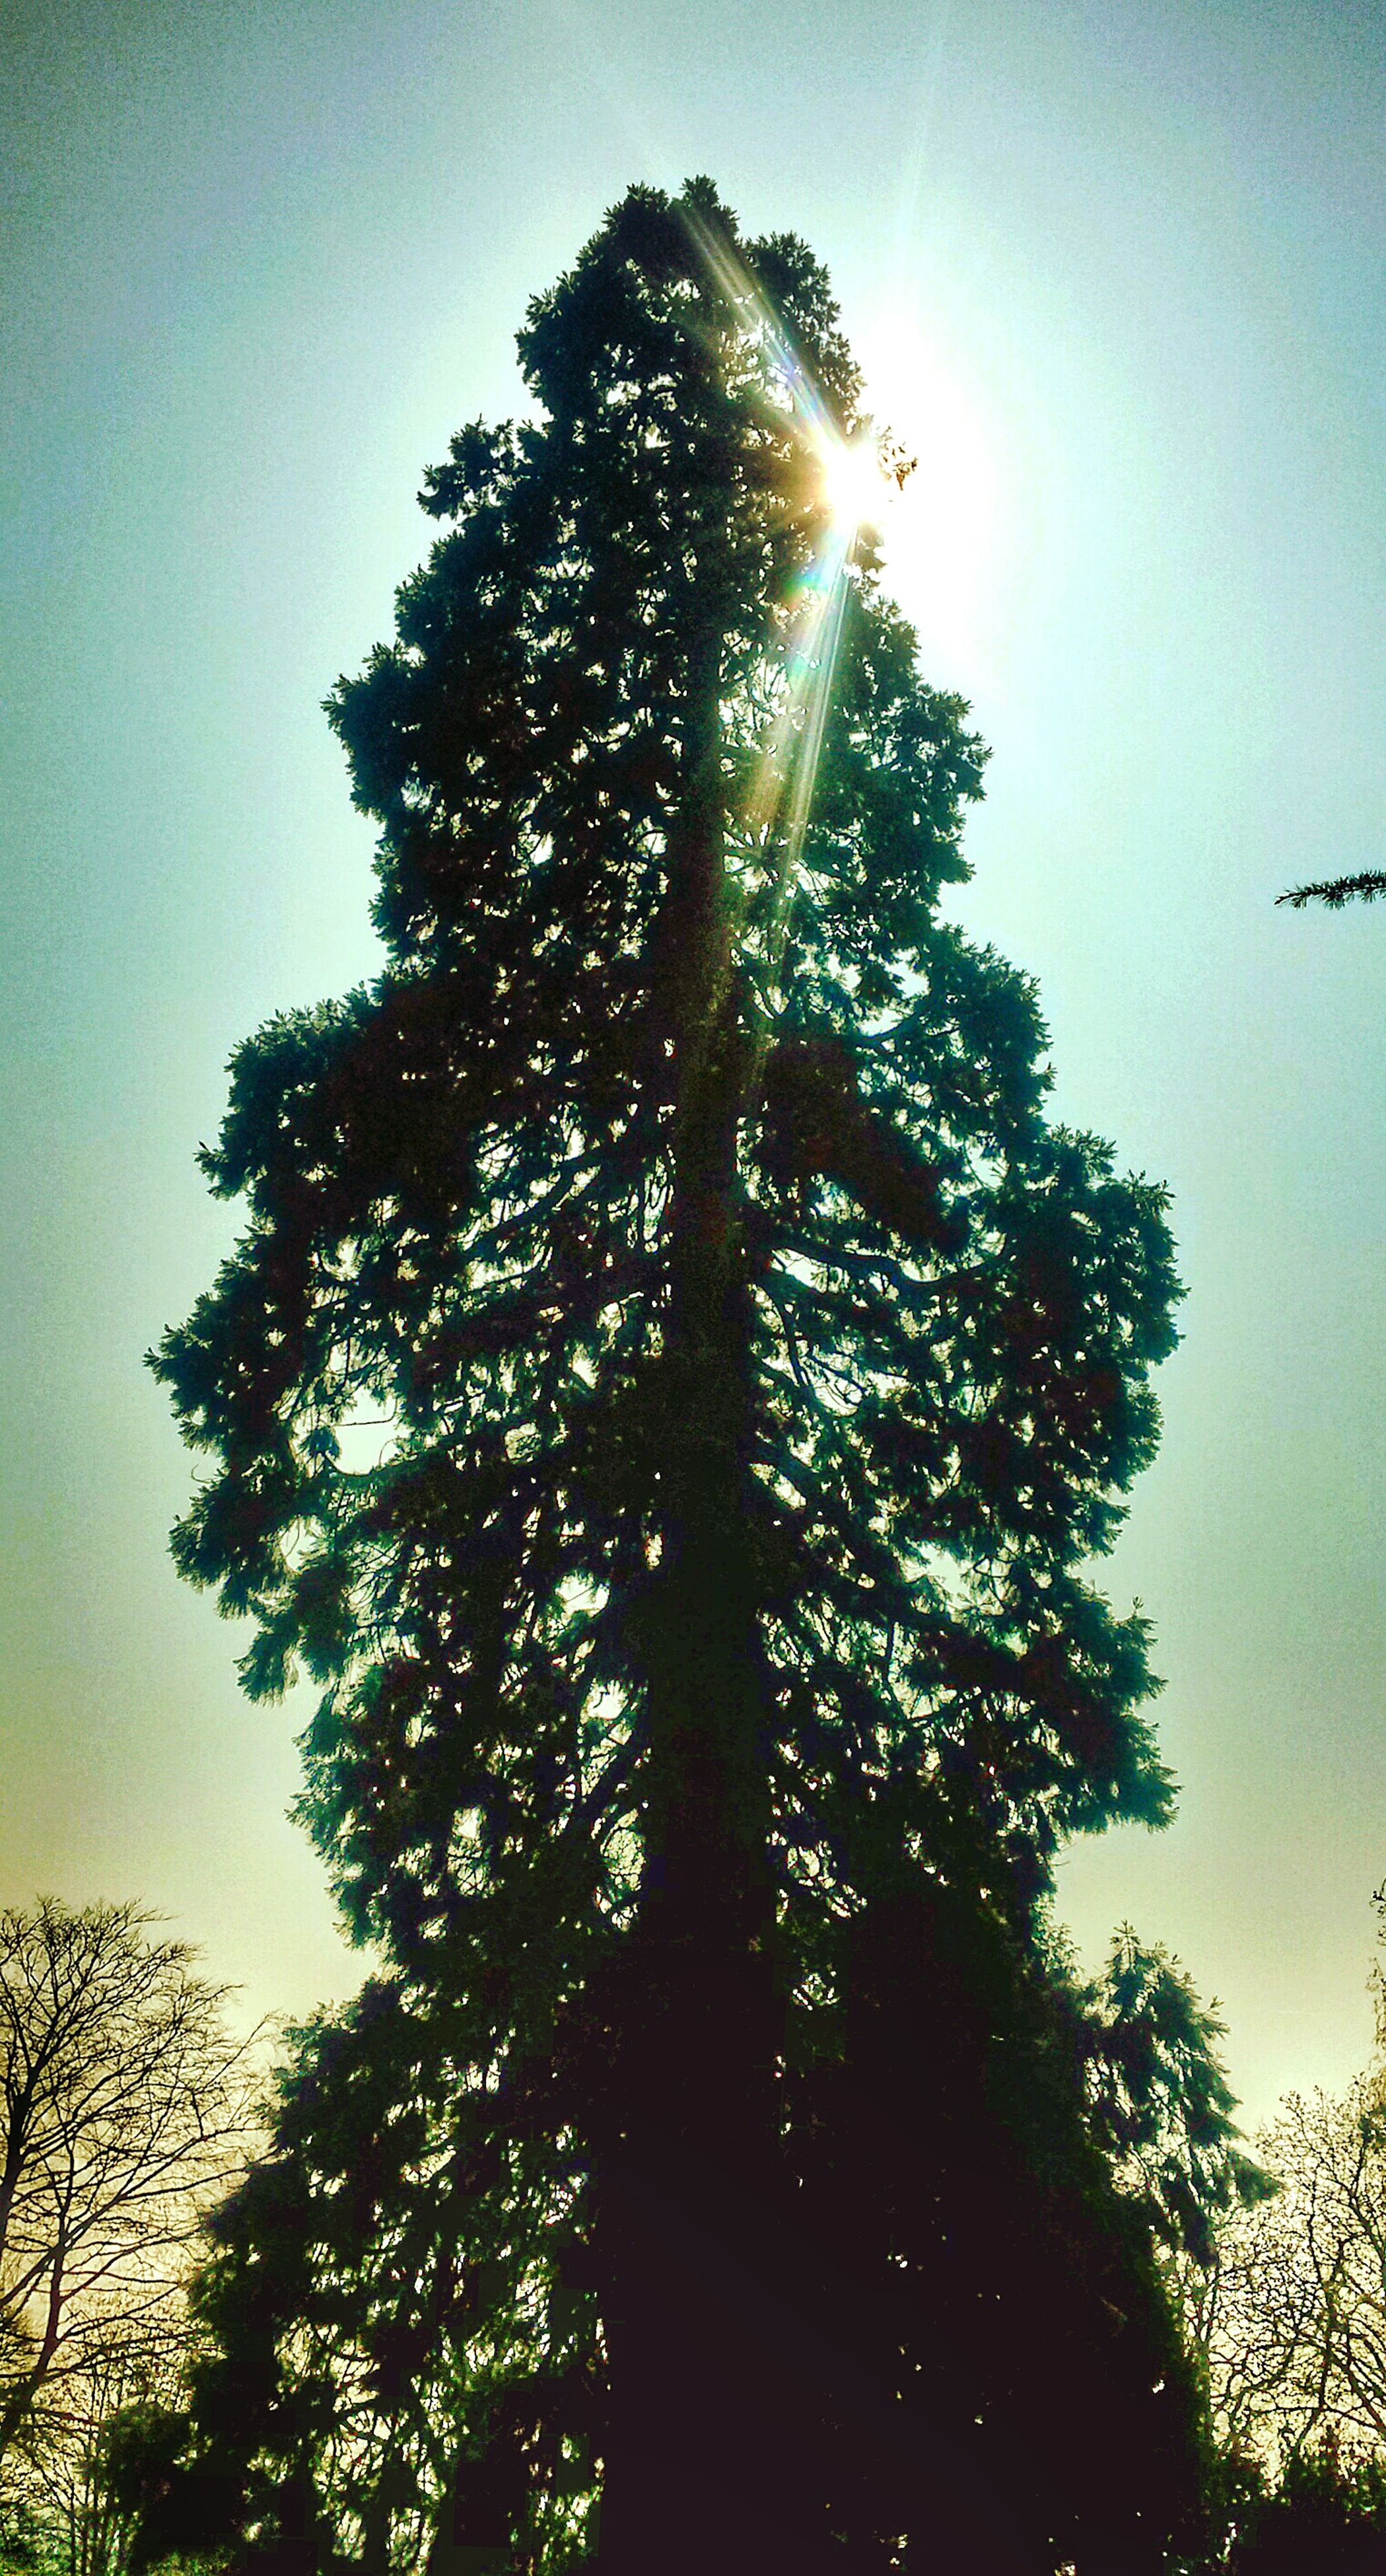 tree, low angle view, sun, silhouette, growth, sunlight, sunbeam, sky, branch, clear sky, nature, tranquility, lens flare, beauty in nature, back lit, sunset, outdoors, no people, tranquil scene, scenics